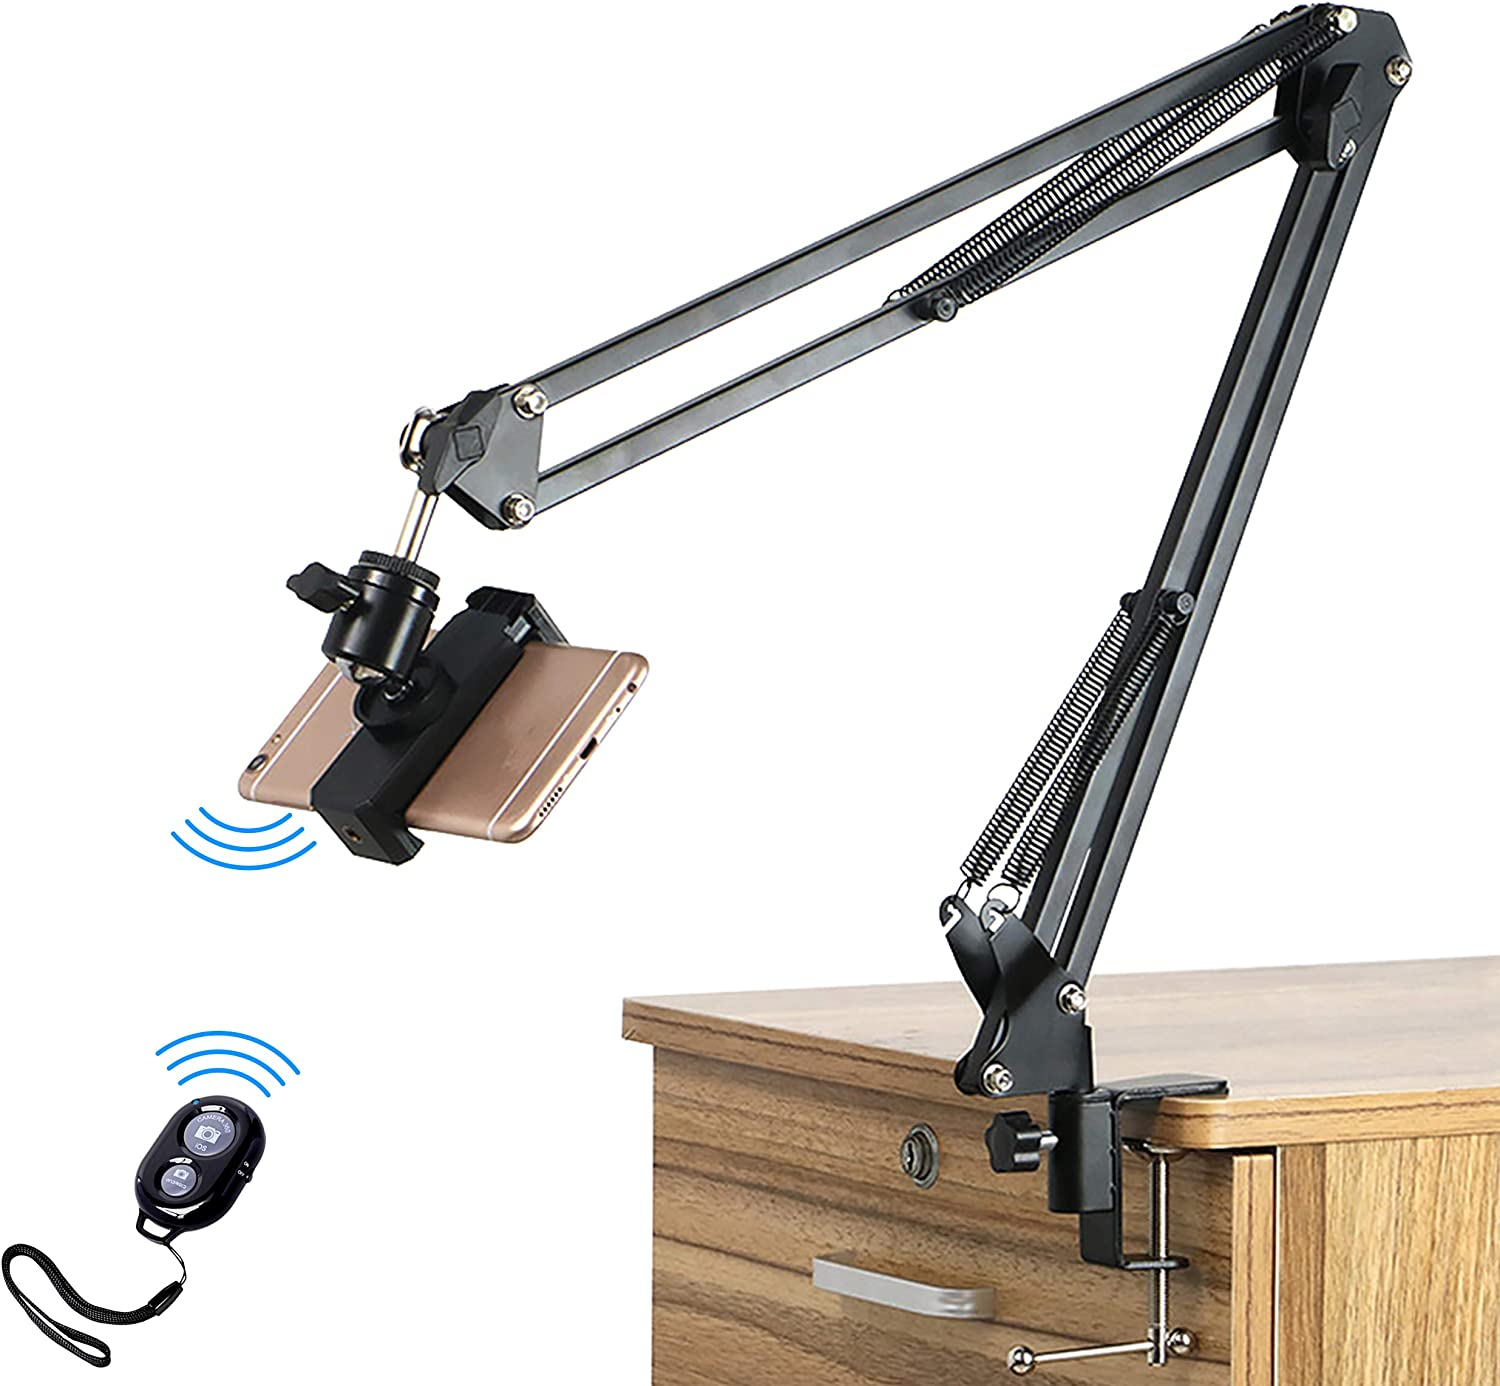 Pixlplay - Arm Stand Phone Holder with Bluetooth Remote Articulated Suspension Boom Scissor for Table Desktop Mount Overhead Filming Compatible with iPhone Samsung GoPro Sony Action Camera